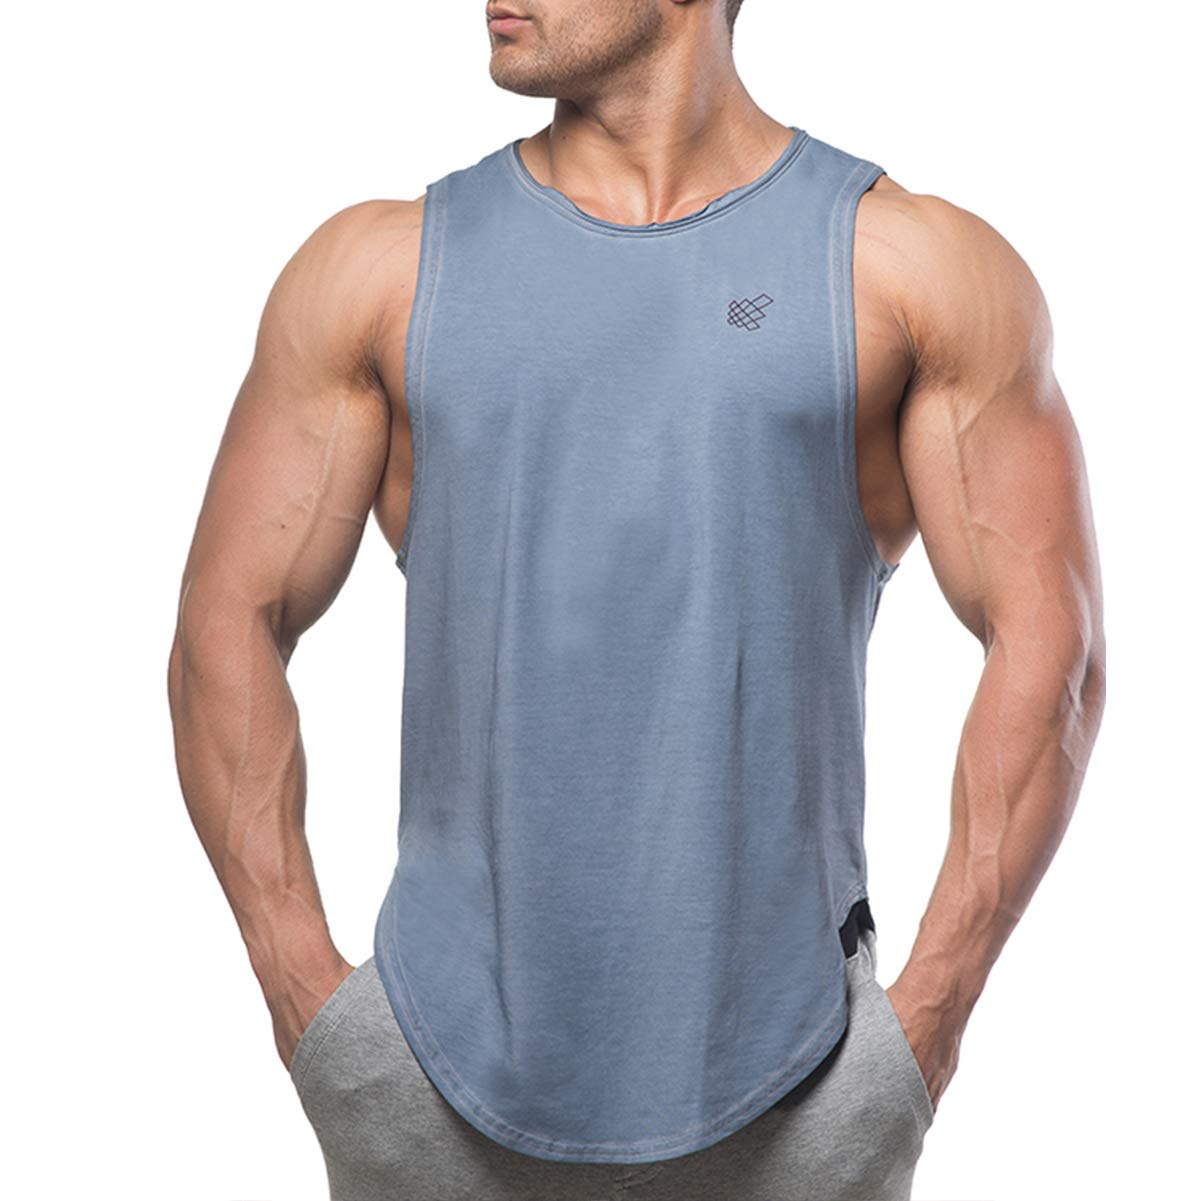 Jed North Muscle Cut Stringer Workout T-Shirt Muscle Tee Bodybuilding Tank Top